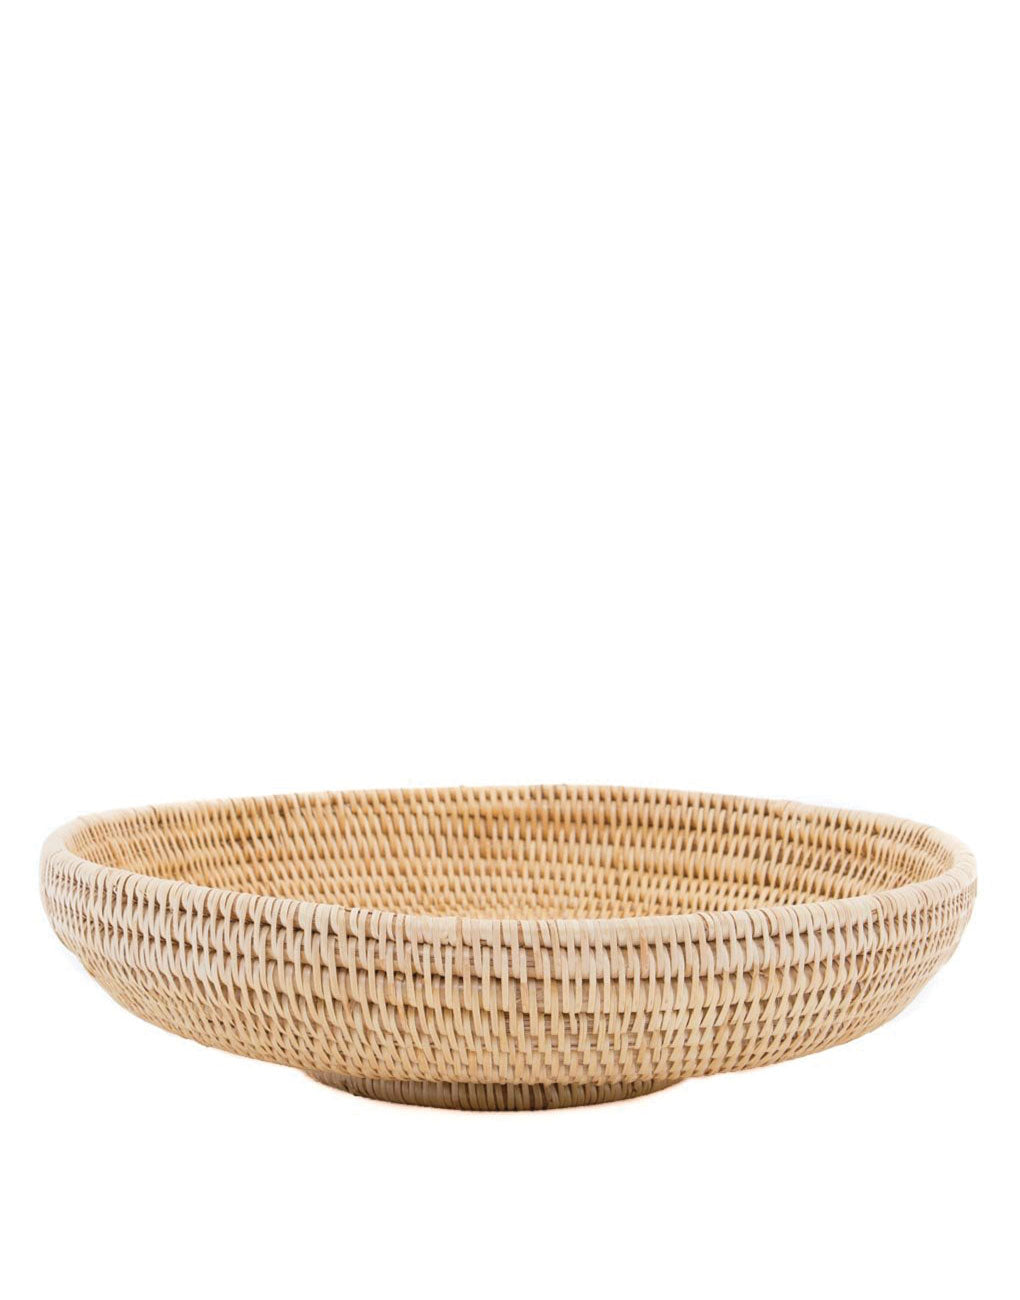 Large Rattan Woven Natural Basket In Natural | The Little Market